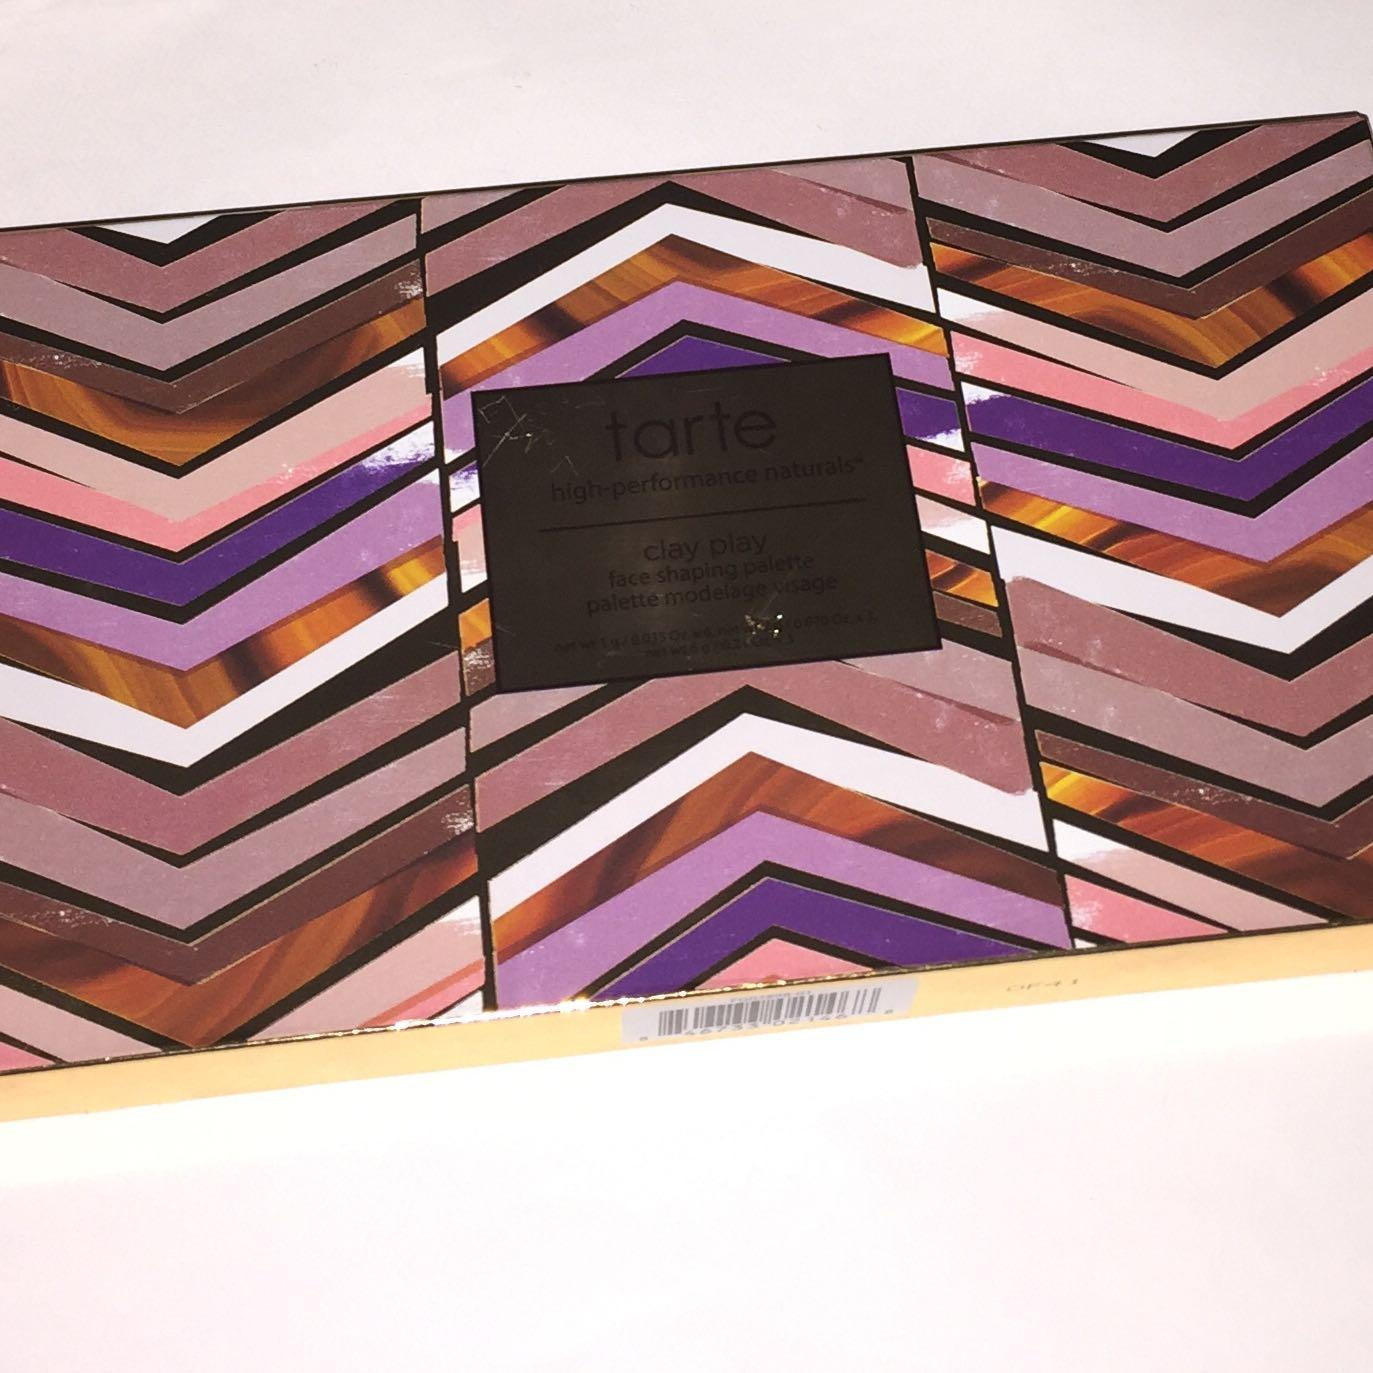 NEW & NOW DISCONTINUED TARTE CLAY PLAY SHAPING PALETTE